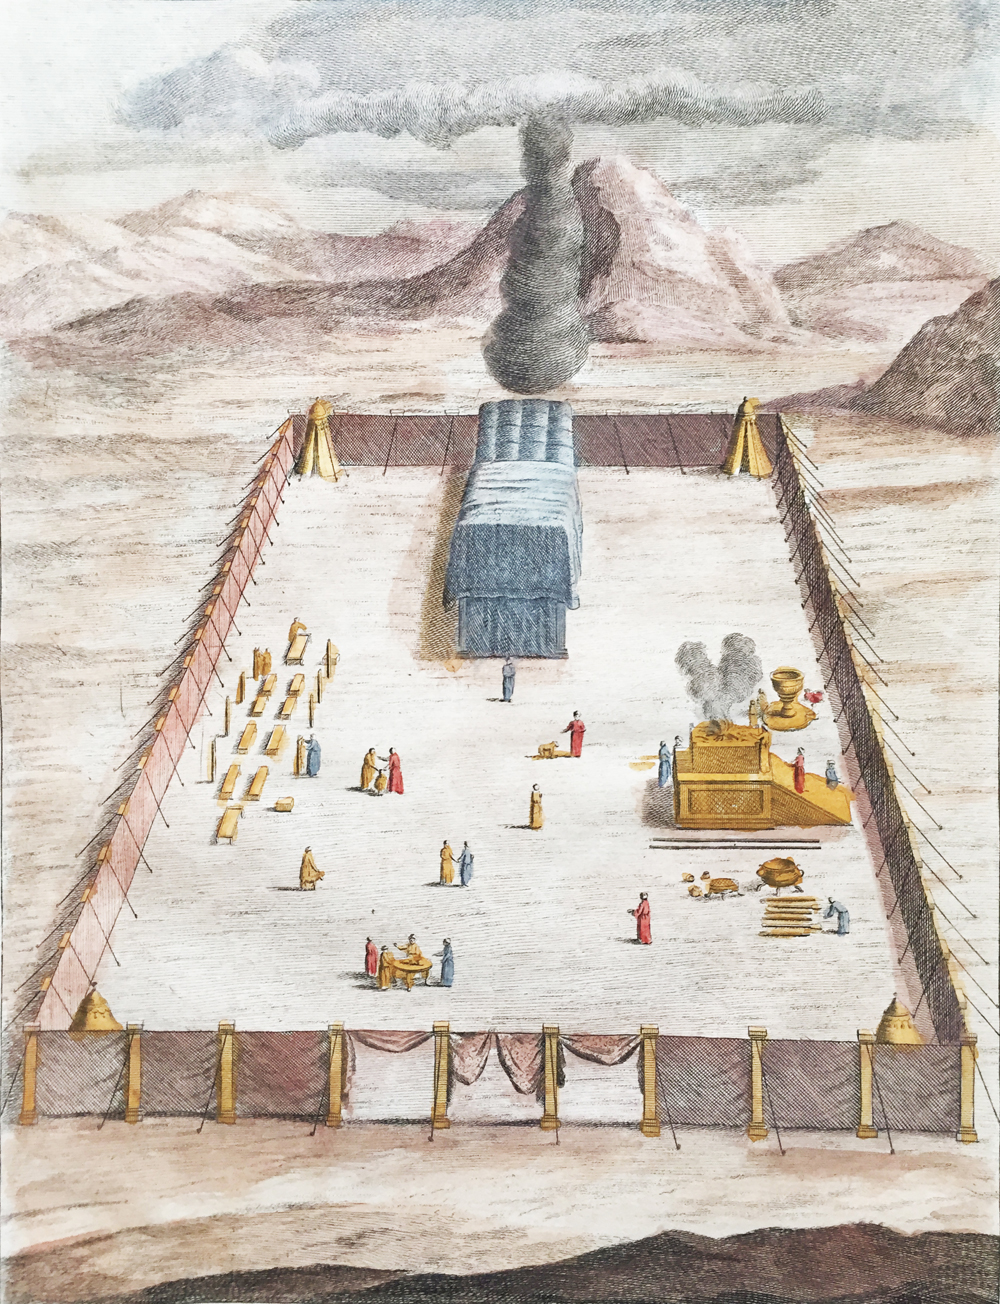 The Tabernacle with its Courts Erected in the Wilderness